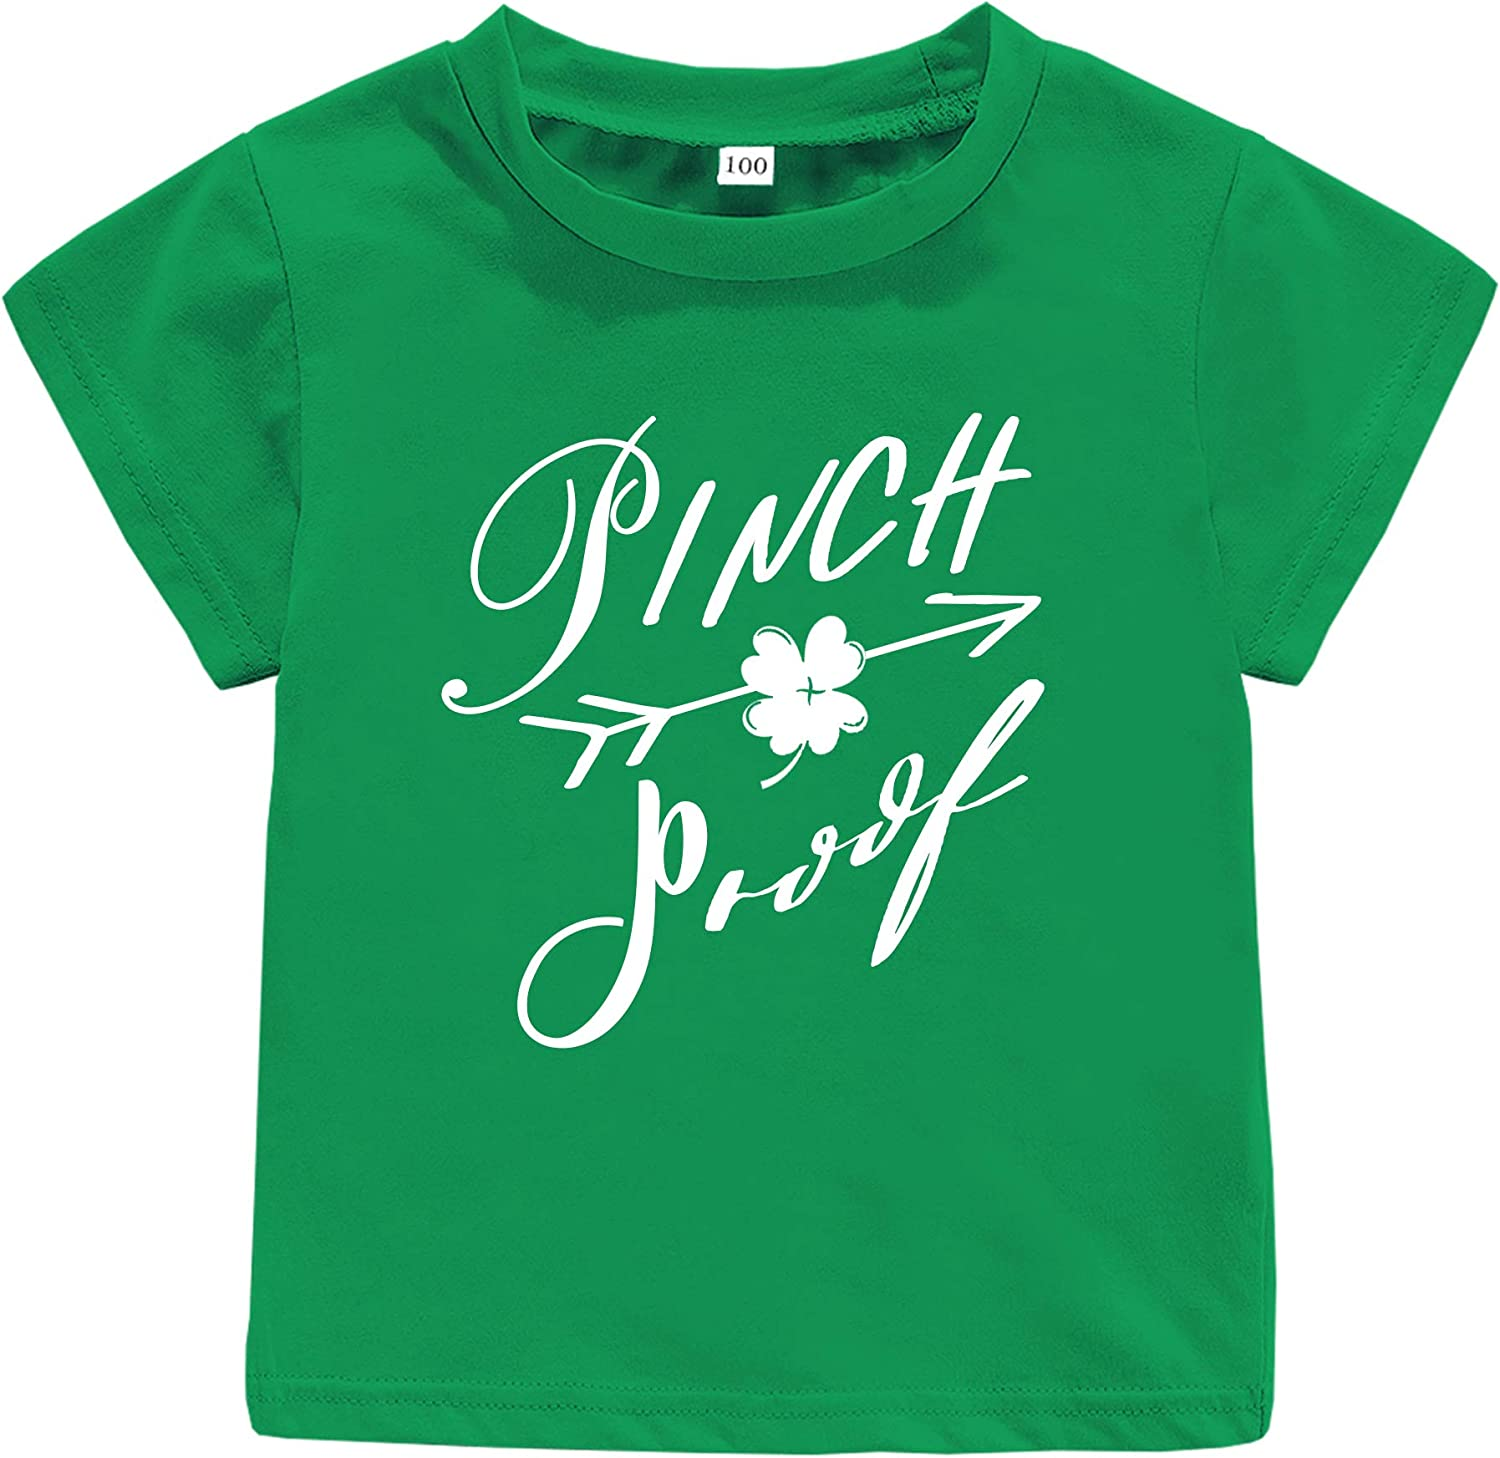 St. Patrick's Day Toddler Baby Shirt Outfit Lucky Charm Short Sleeve Top